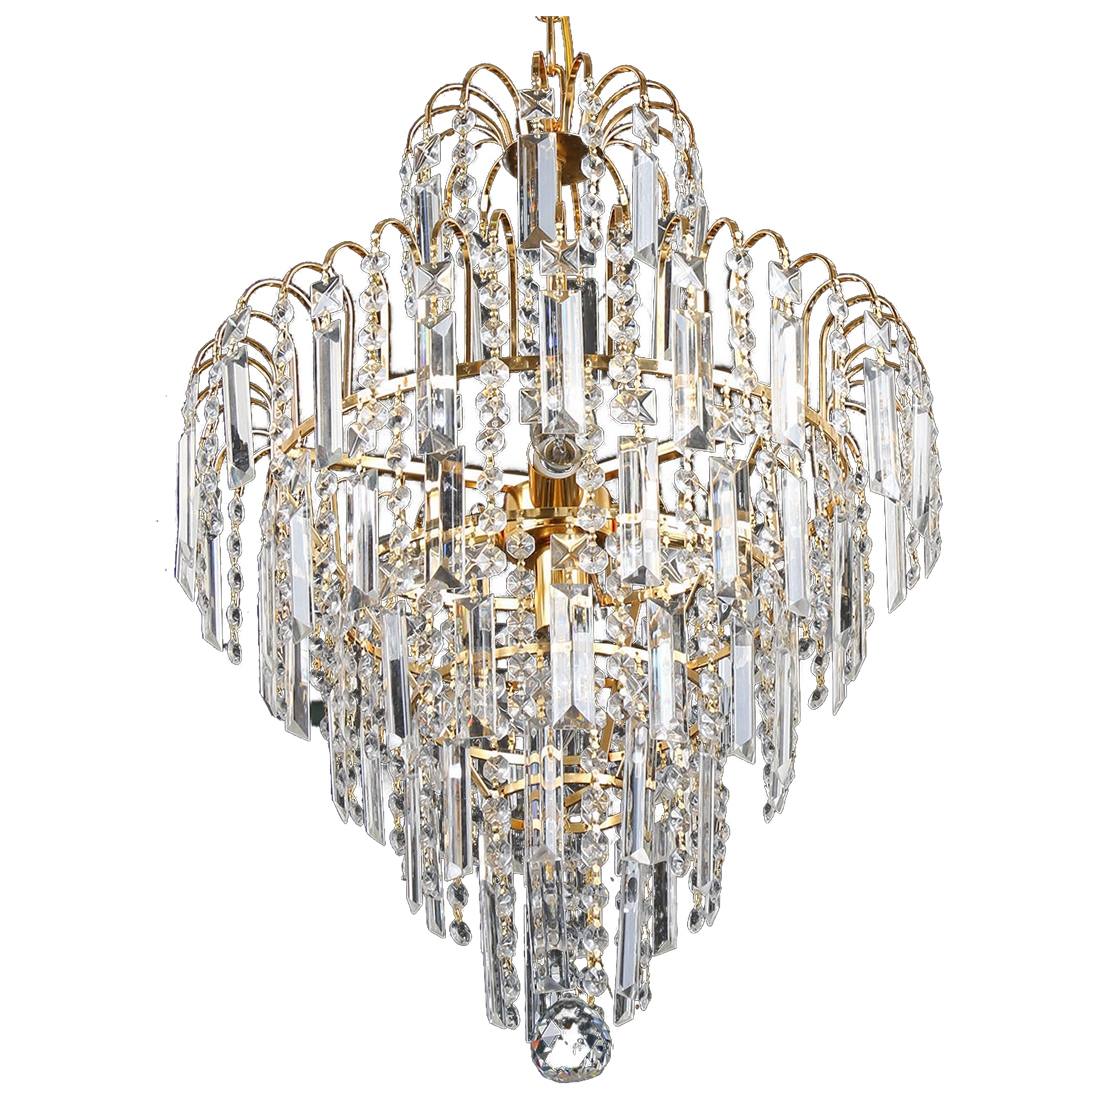 Luxury Big Crystal  Modern Ceiling Light Lamp  Lighting Fixture tz 8104 electric rotary lever enclosed limit switch